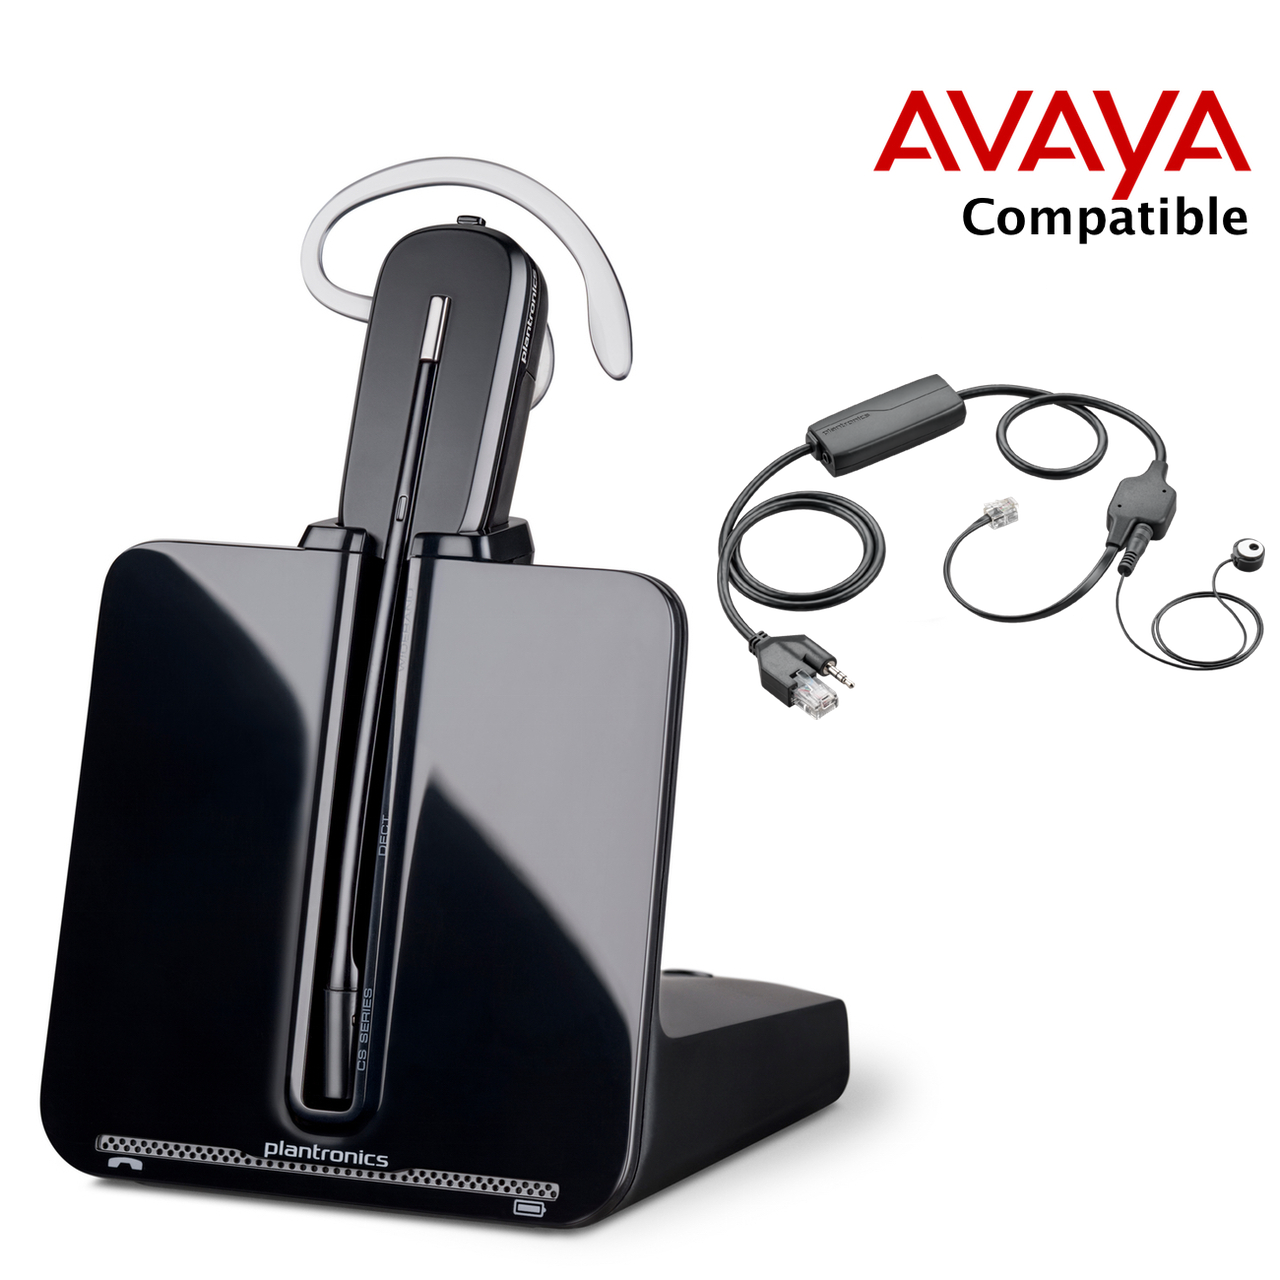 Avaya Compatible Plantronics VoIP Wireless Headset Bundle | Electronic  Answerer included | Avaya Phones: 1408, 1416, 1608, 1616, 2410, 4630, 9404,